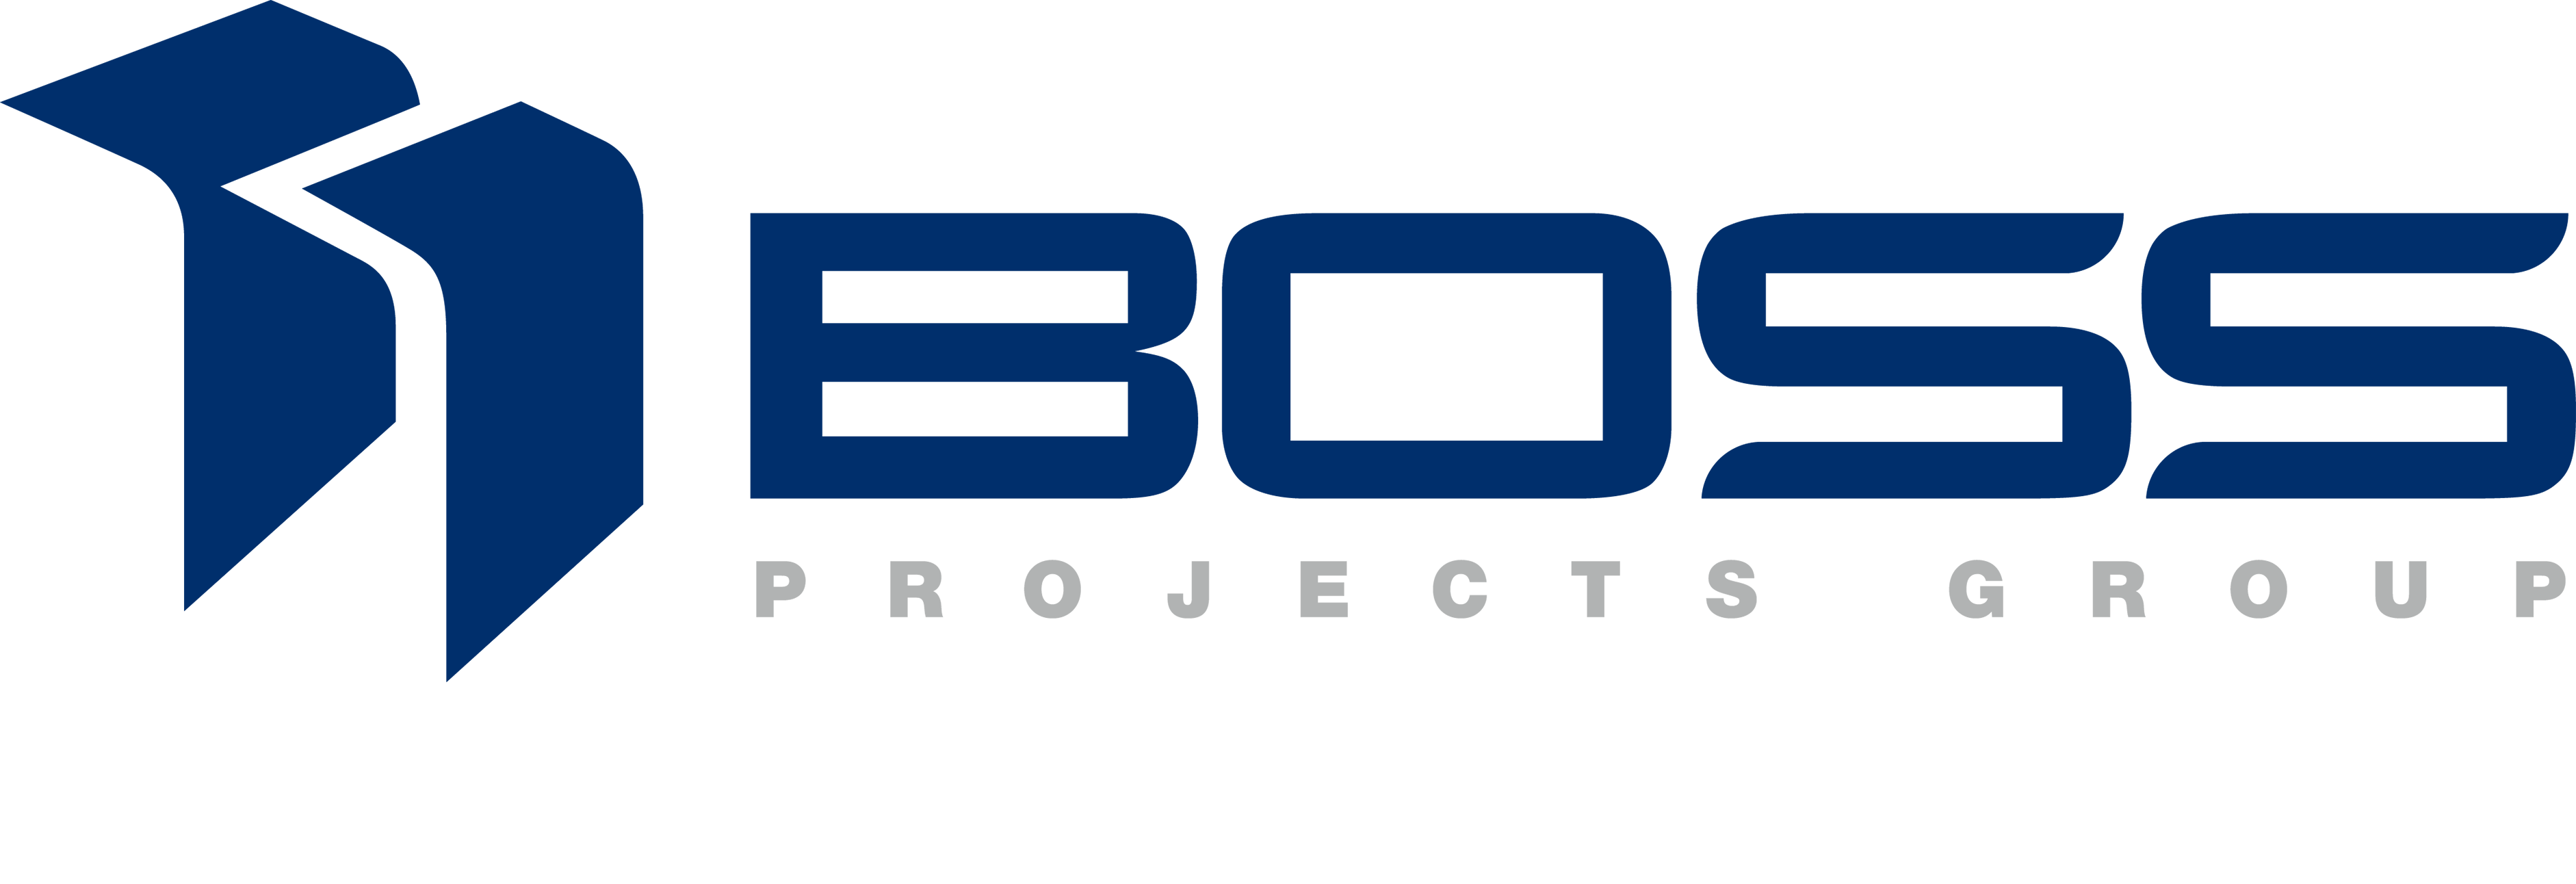 Boss Projects Group logo